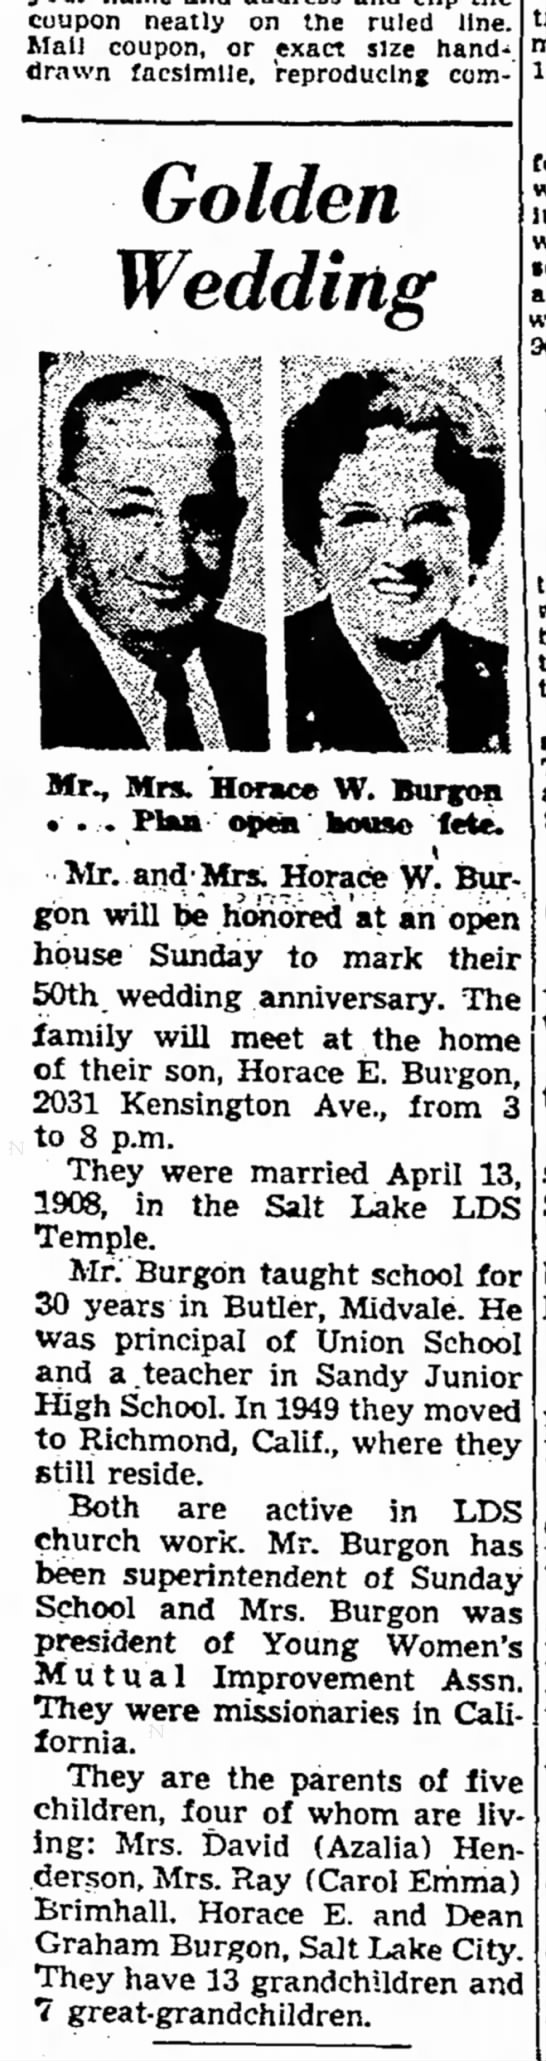 Horace & Mary Alice Graham Burgon 50th Wdg. Ann. 1958 - cuupon neatly on the ruled line. Mall coupon,...